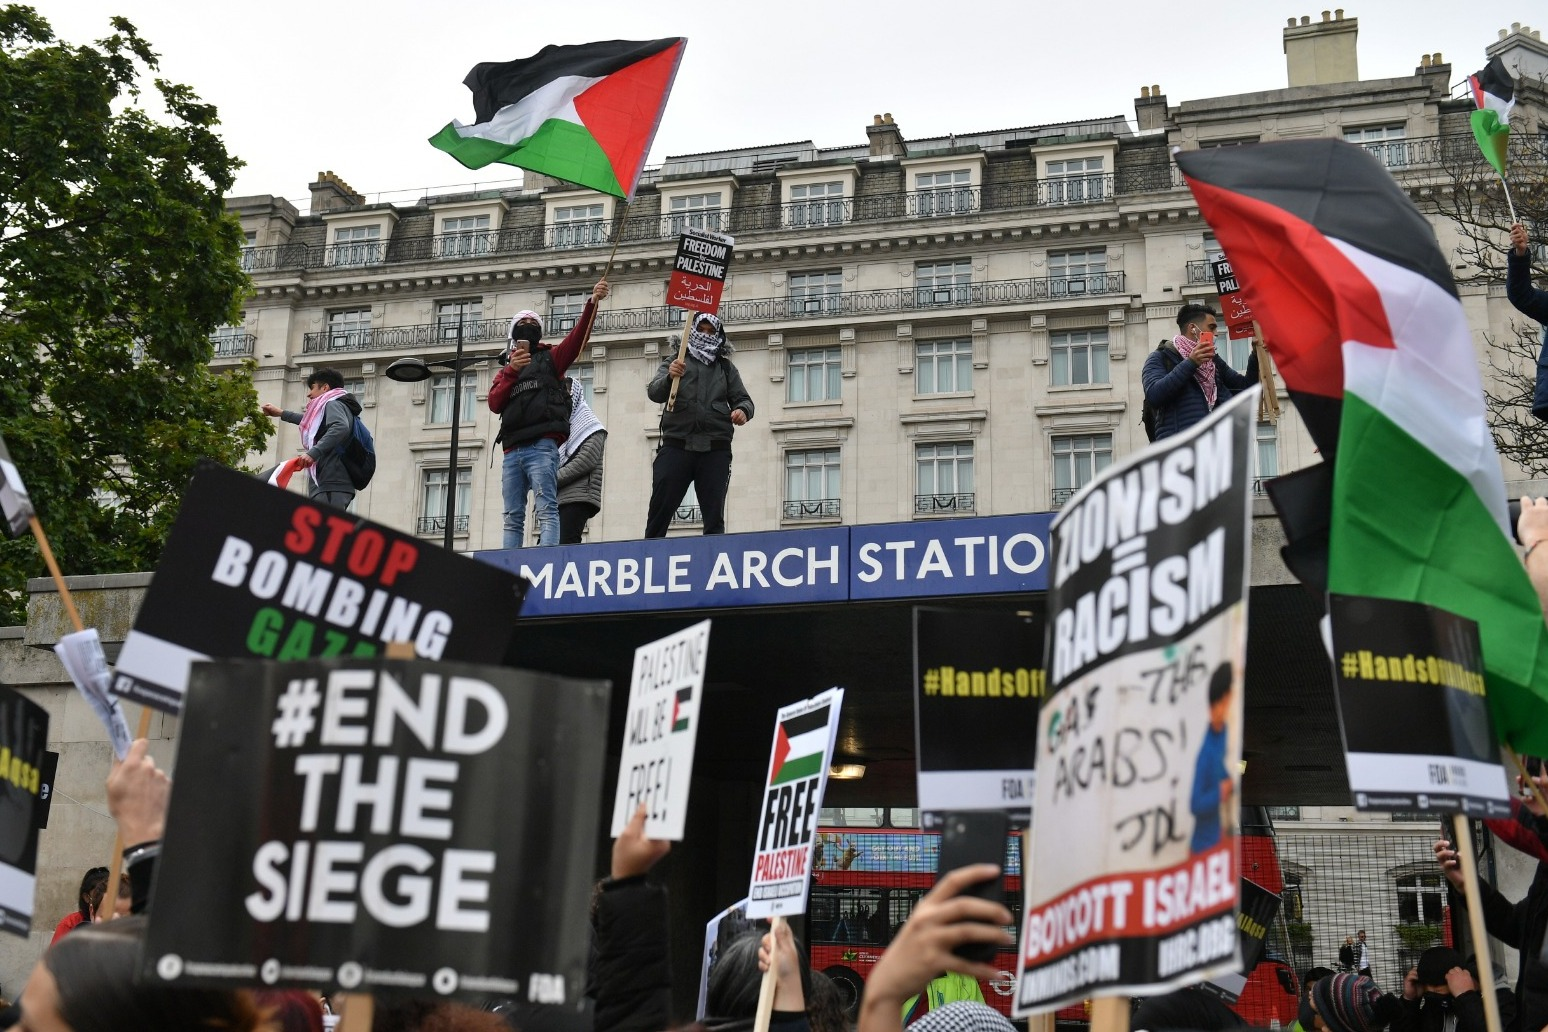 Marchers gather in central London for protest against Gaza violence